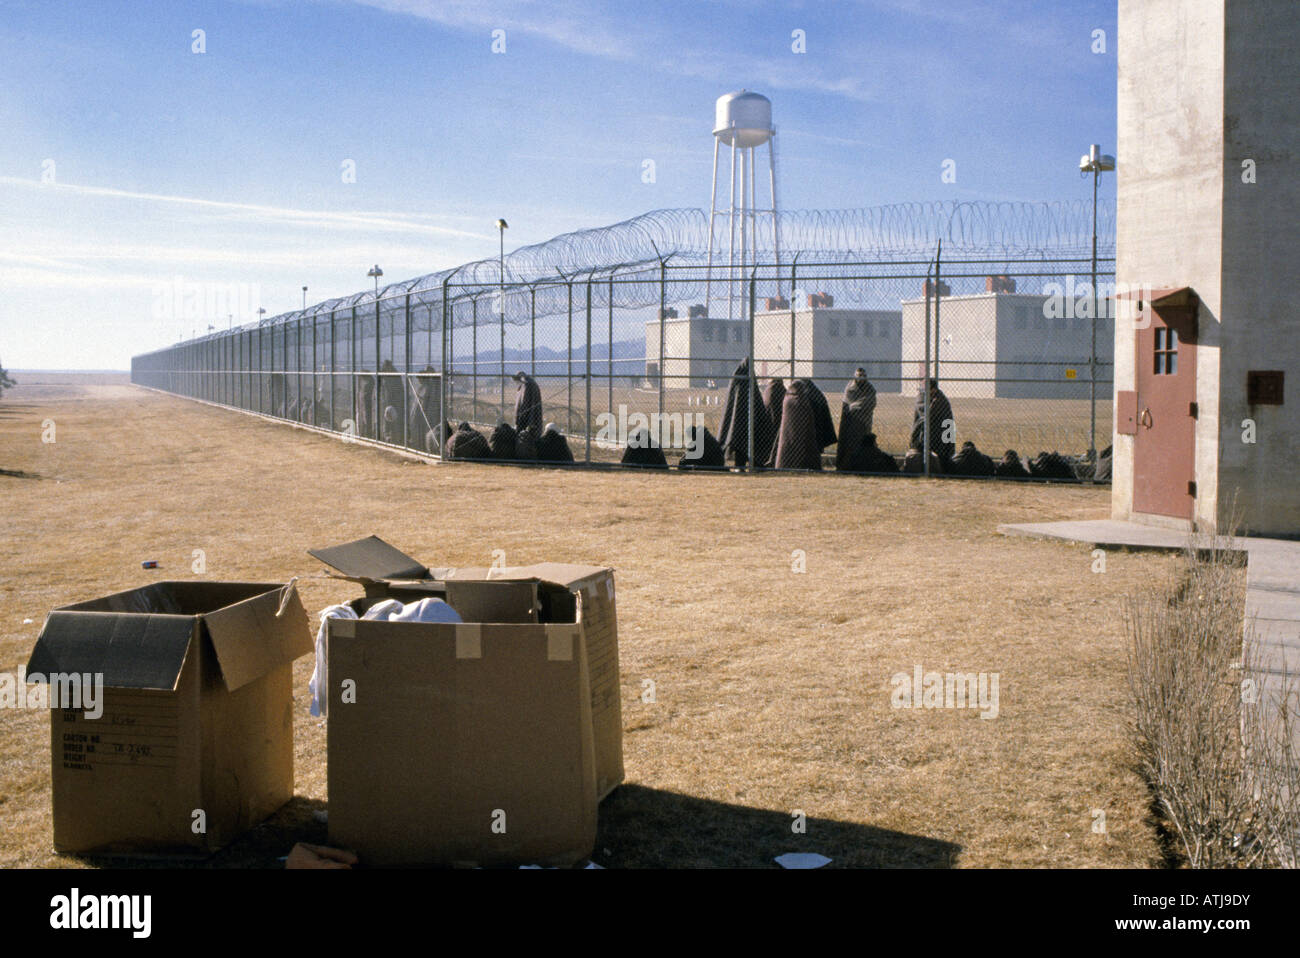 prison riot research paper 25-9-2015 by keri blakinger december 17, 2017 deaths behind bars are on the rise, and a prison riot research paper recently released study.